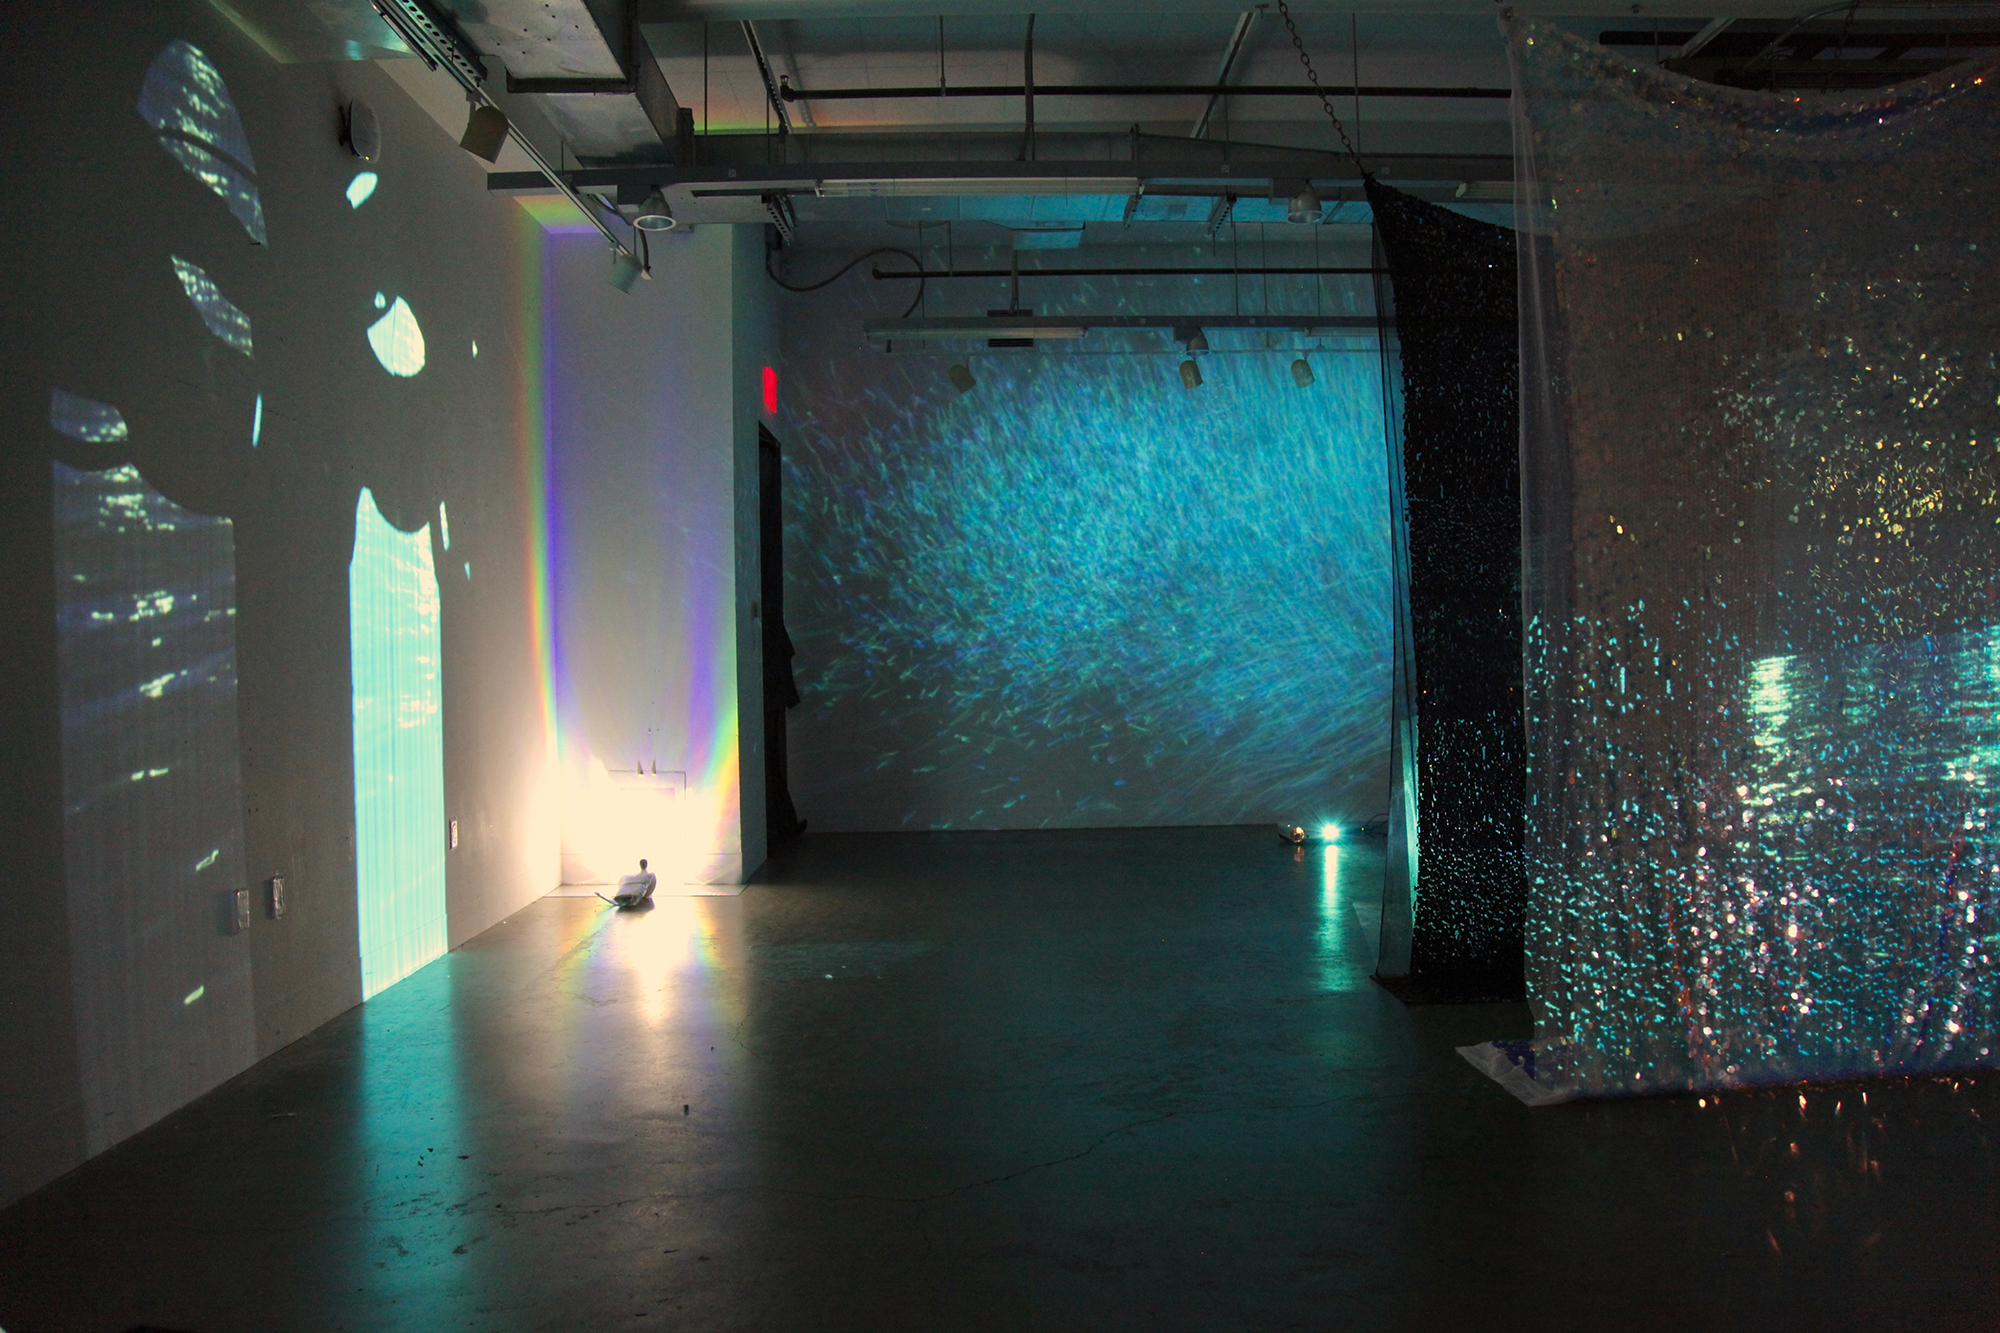 between body - 2018, Sequins, cracked mirror, paint, boxing gloves, flashlights, holographic vinyl, two identical videos of the Atlantic Ocean at night, one has been color manipulated to be a Caribbean Sea blue.